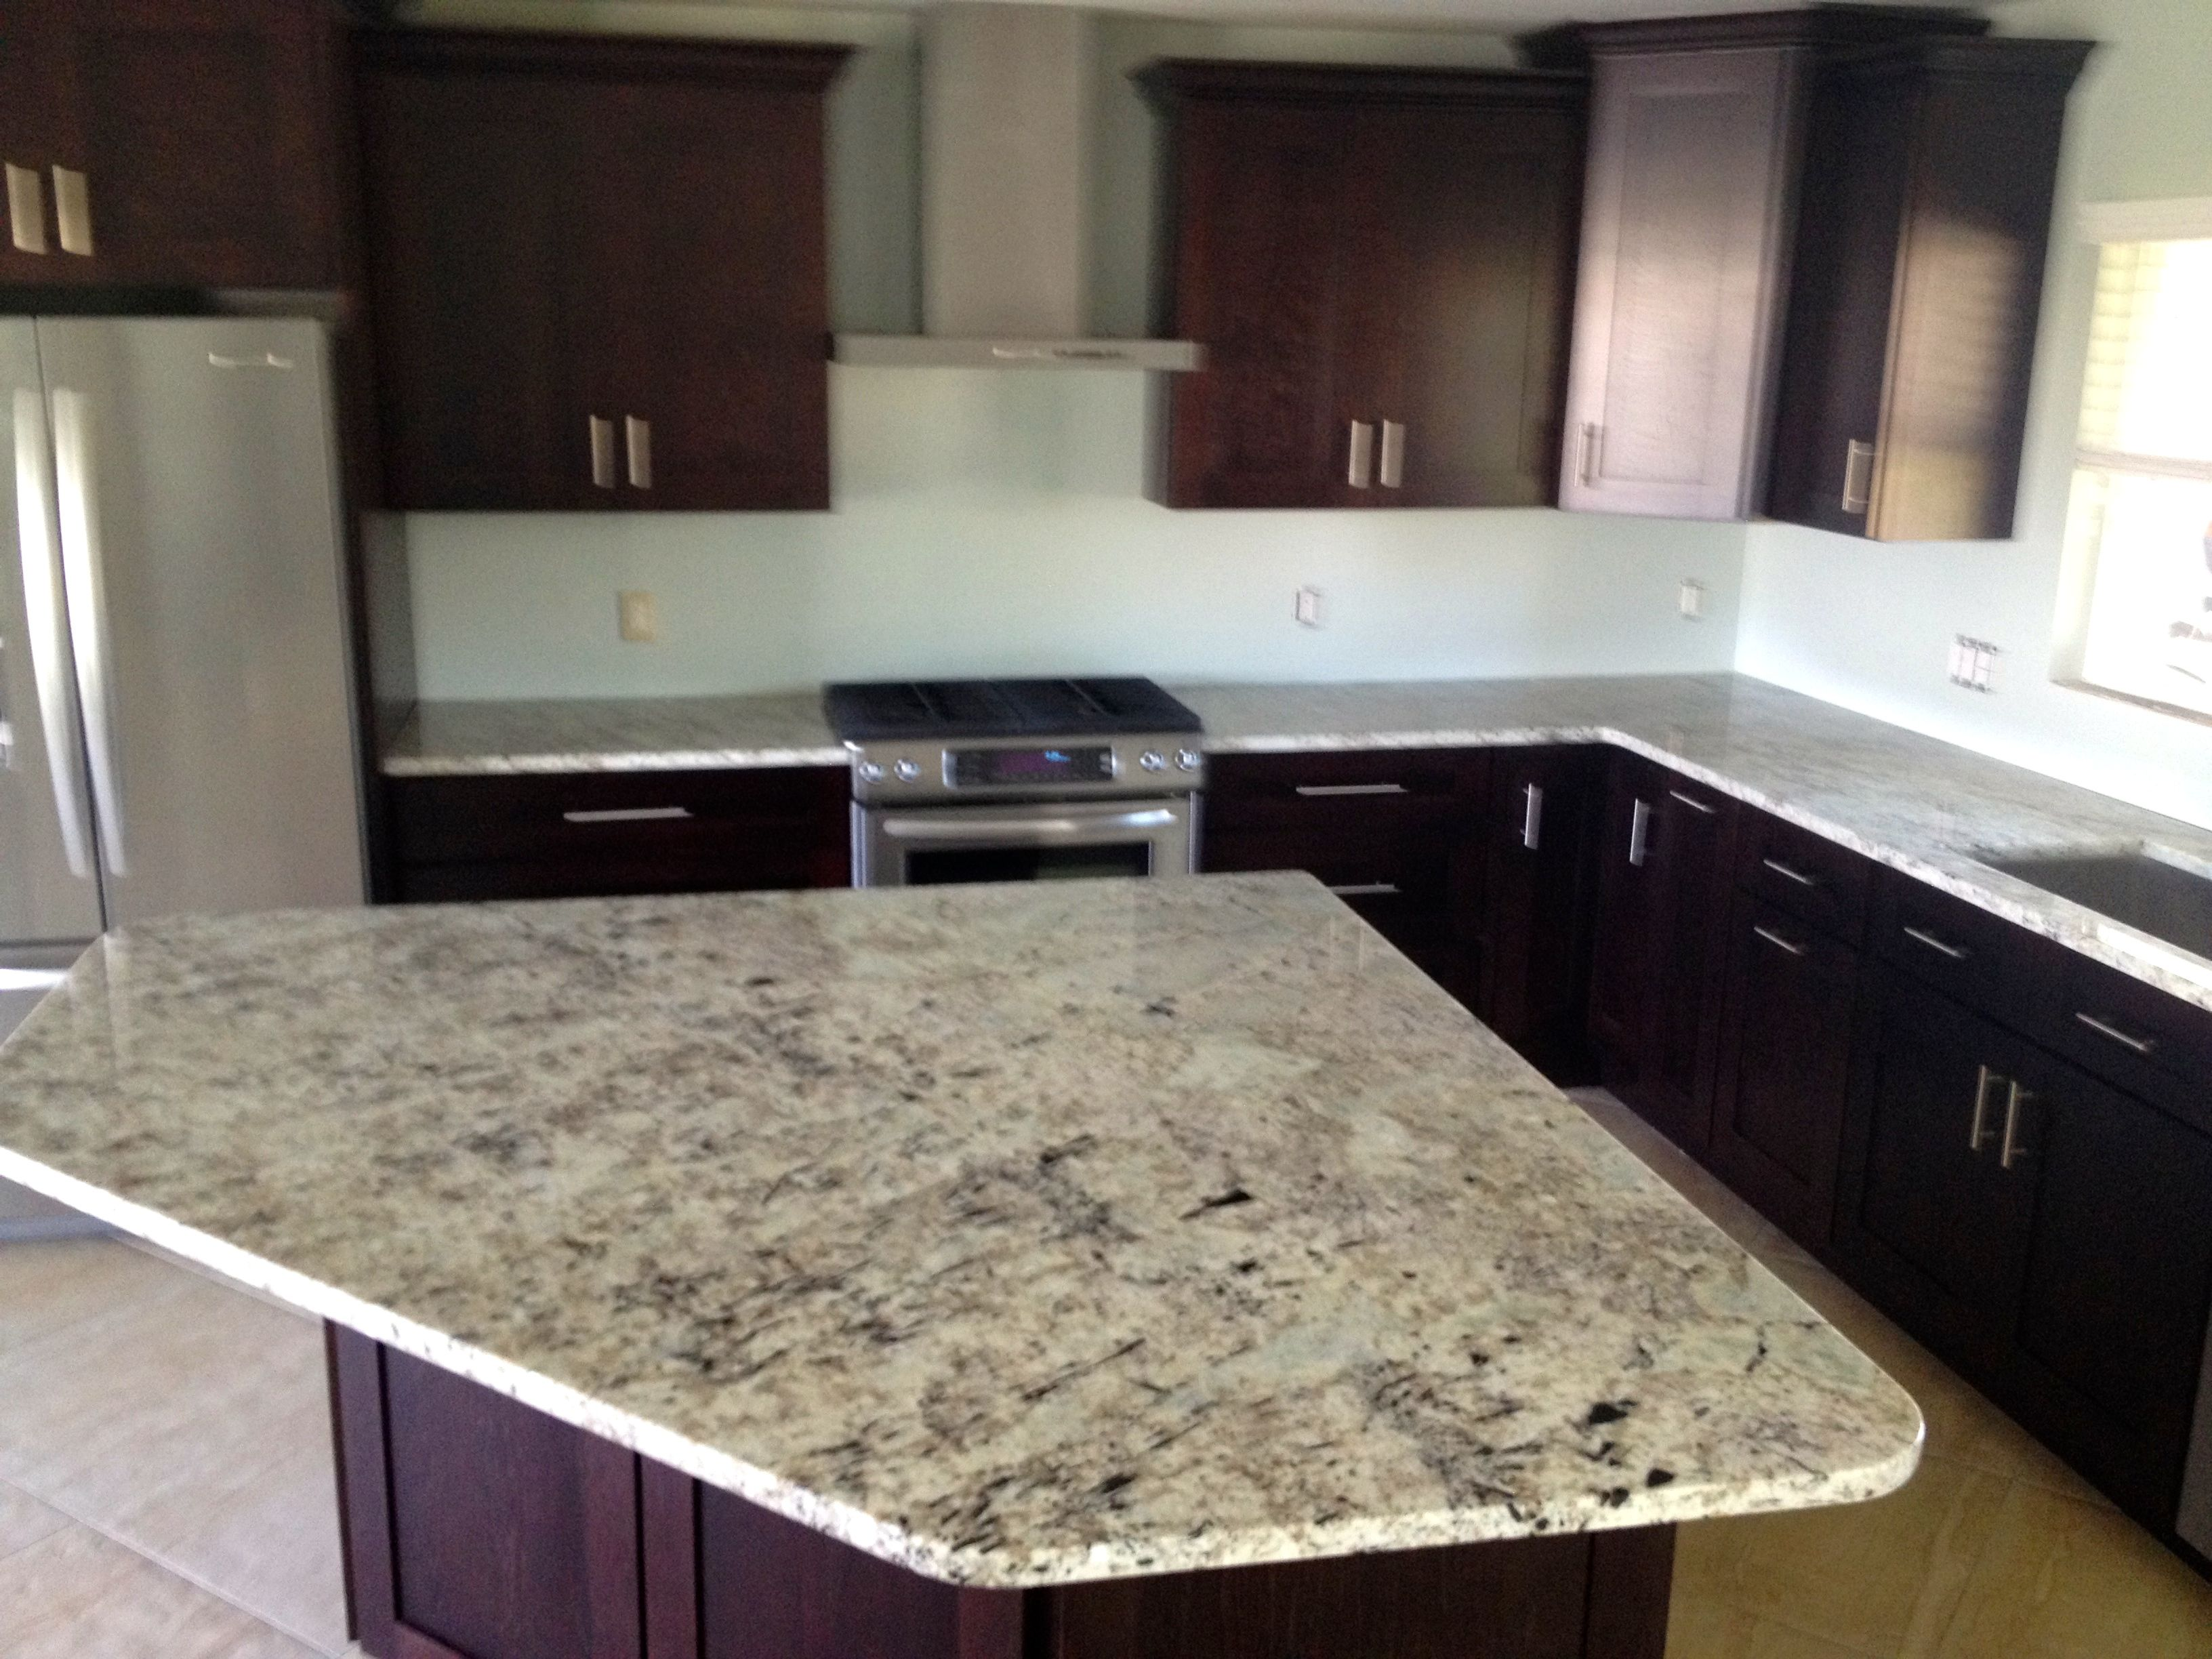 White galaxy granite ideas pictures remodel and decor - Mocha Shaker Cabinets Modern Hardware Galaxy White Granite Tops Backsplash Not Installed